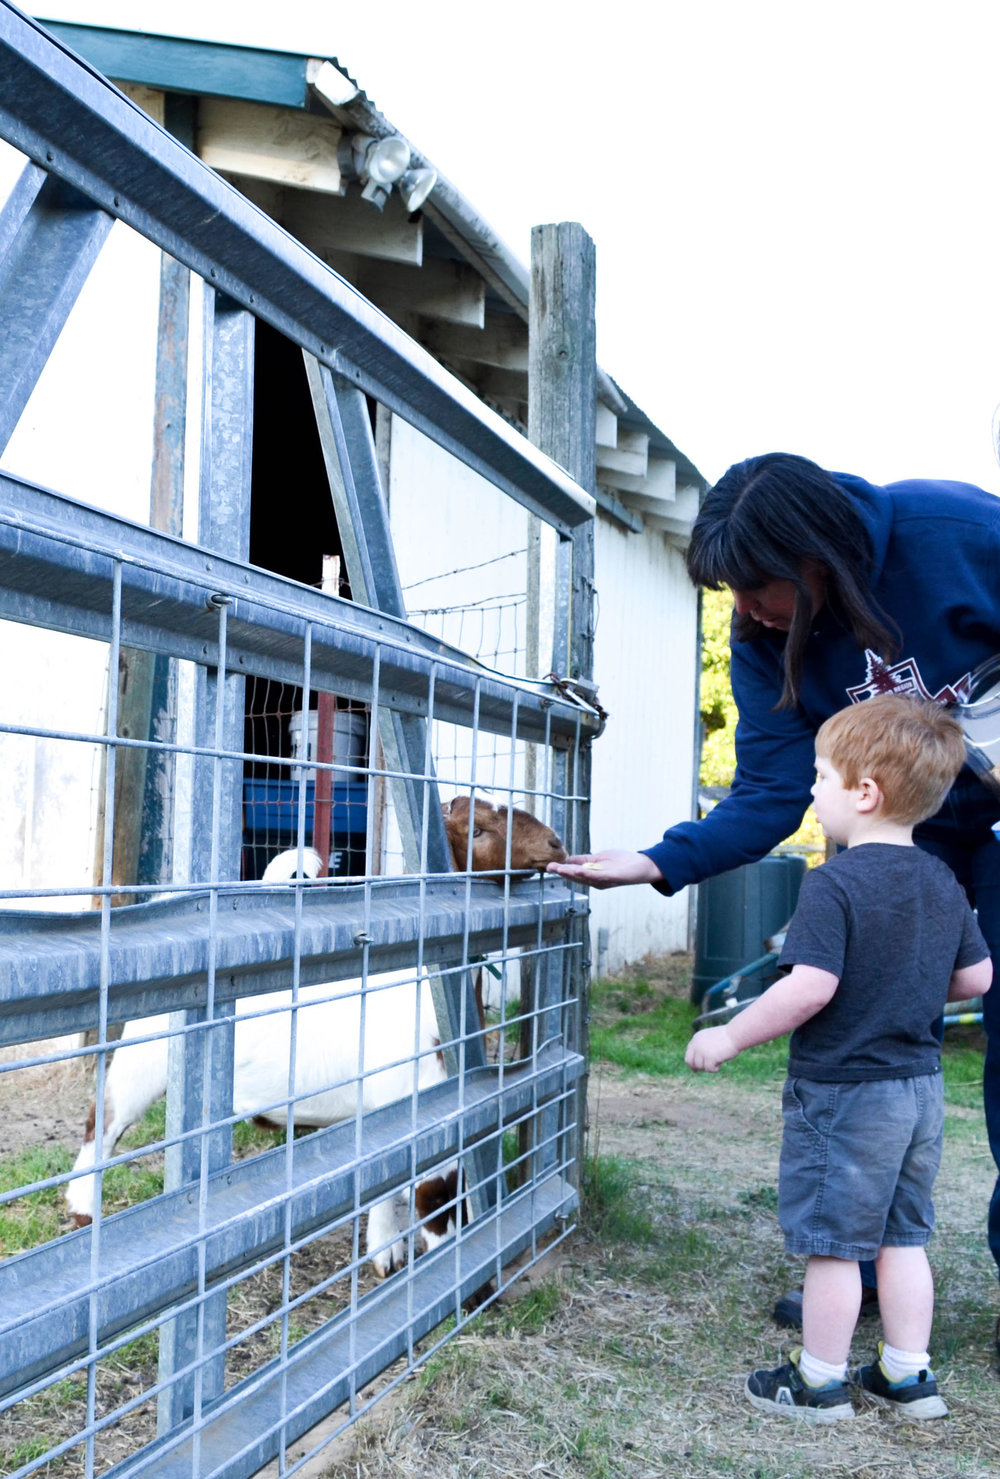 Beth helps a young guest feed a goat.